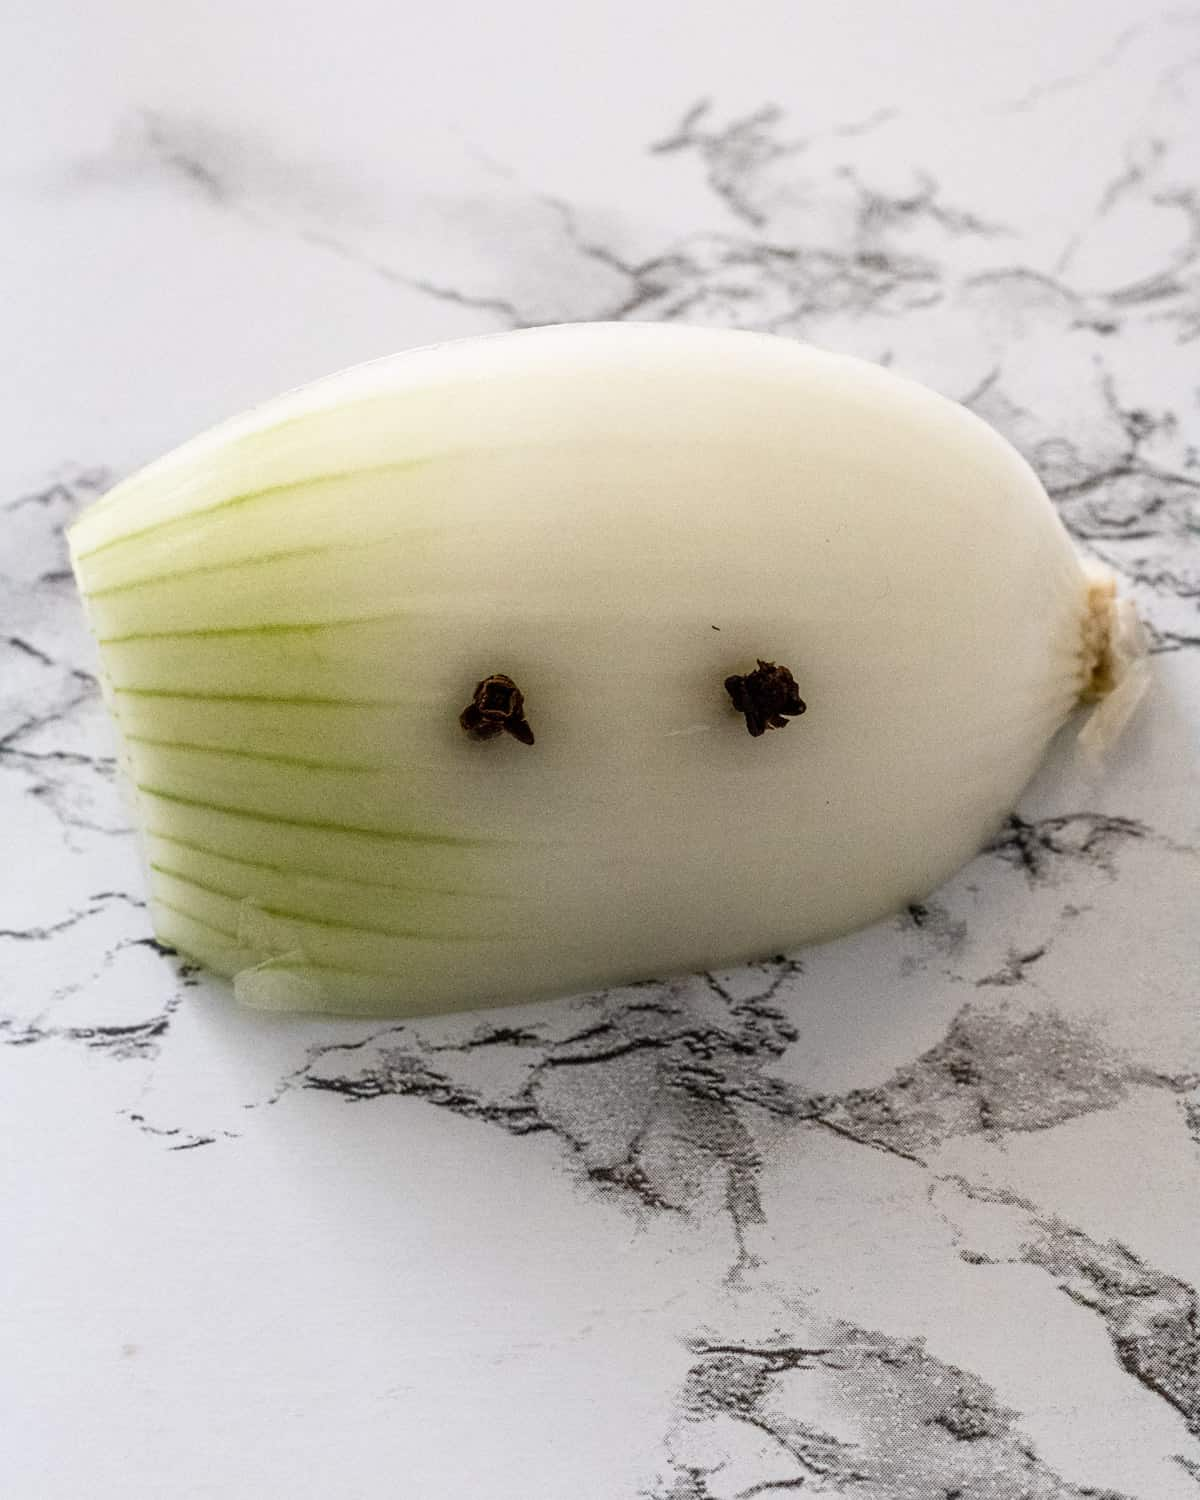 Onion with two cloves stuck into the side.